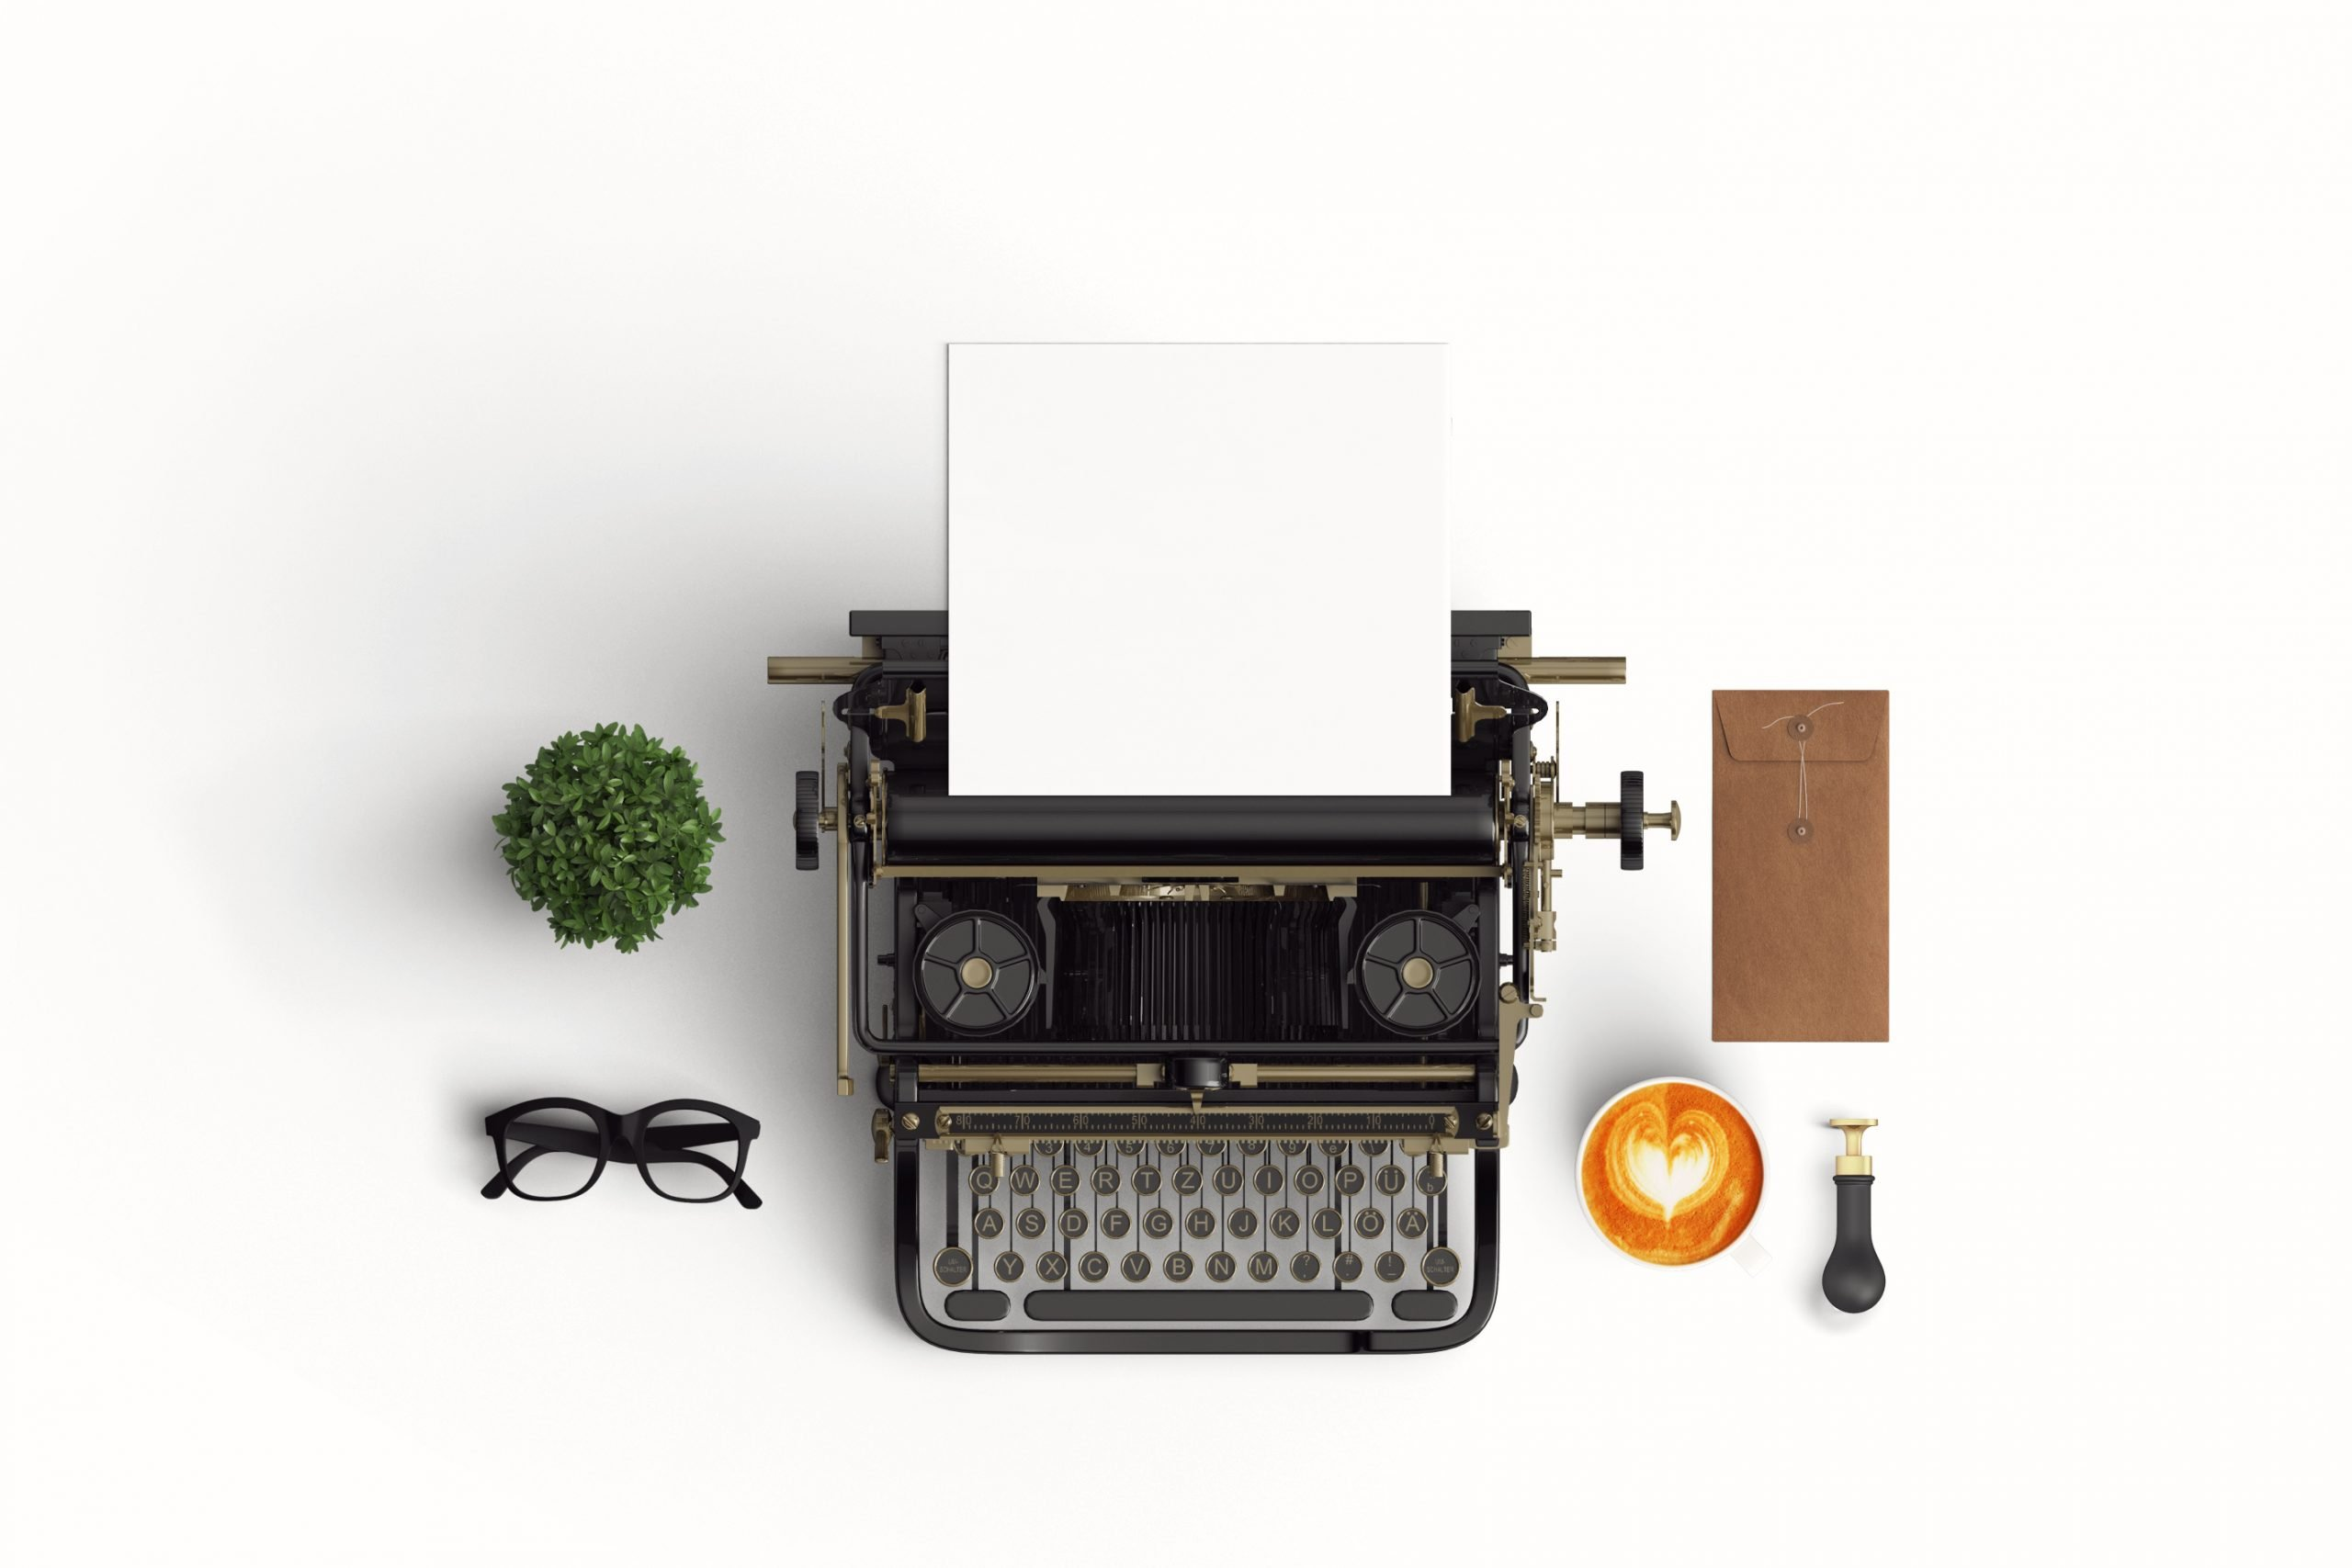 Looking down on a vintage typewriter, blank paper ready, spectacles, cafe latte, a small plant, and an envelope.